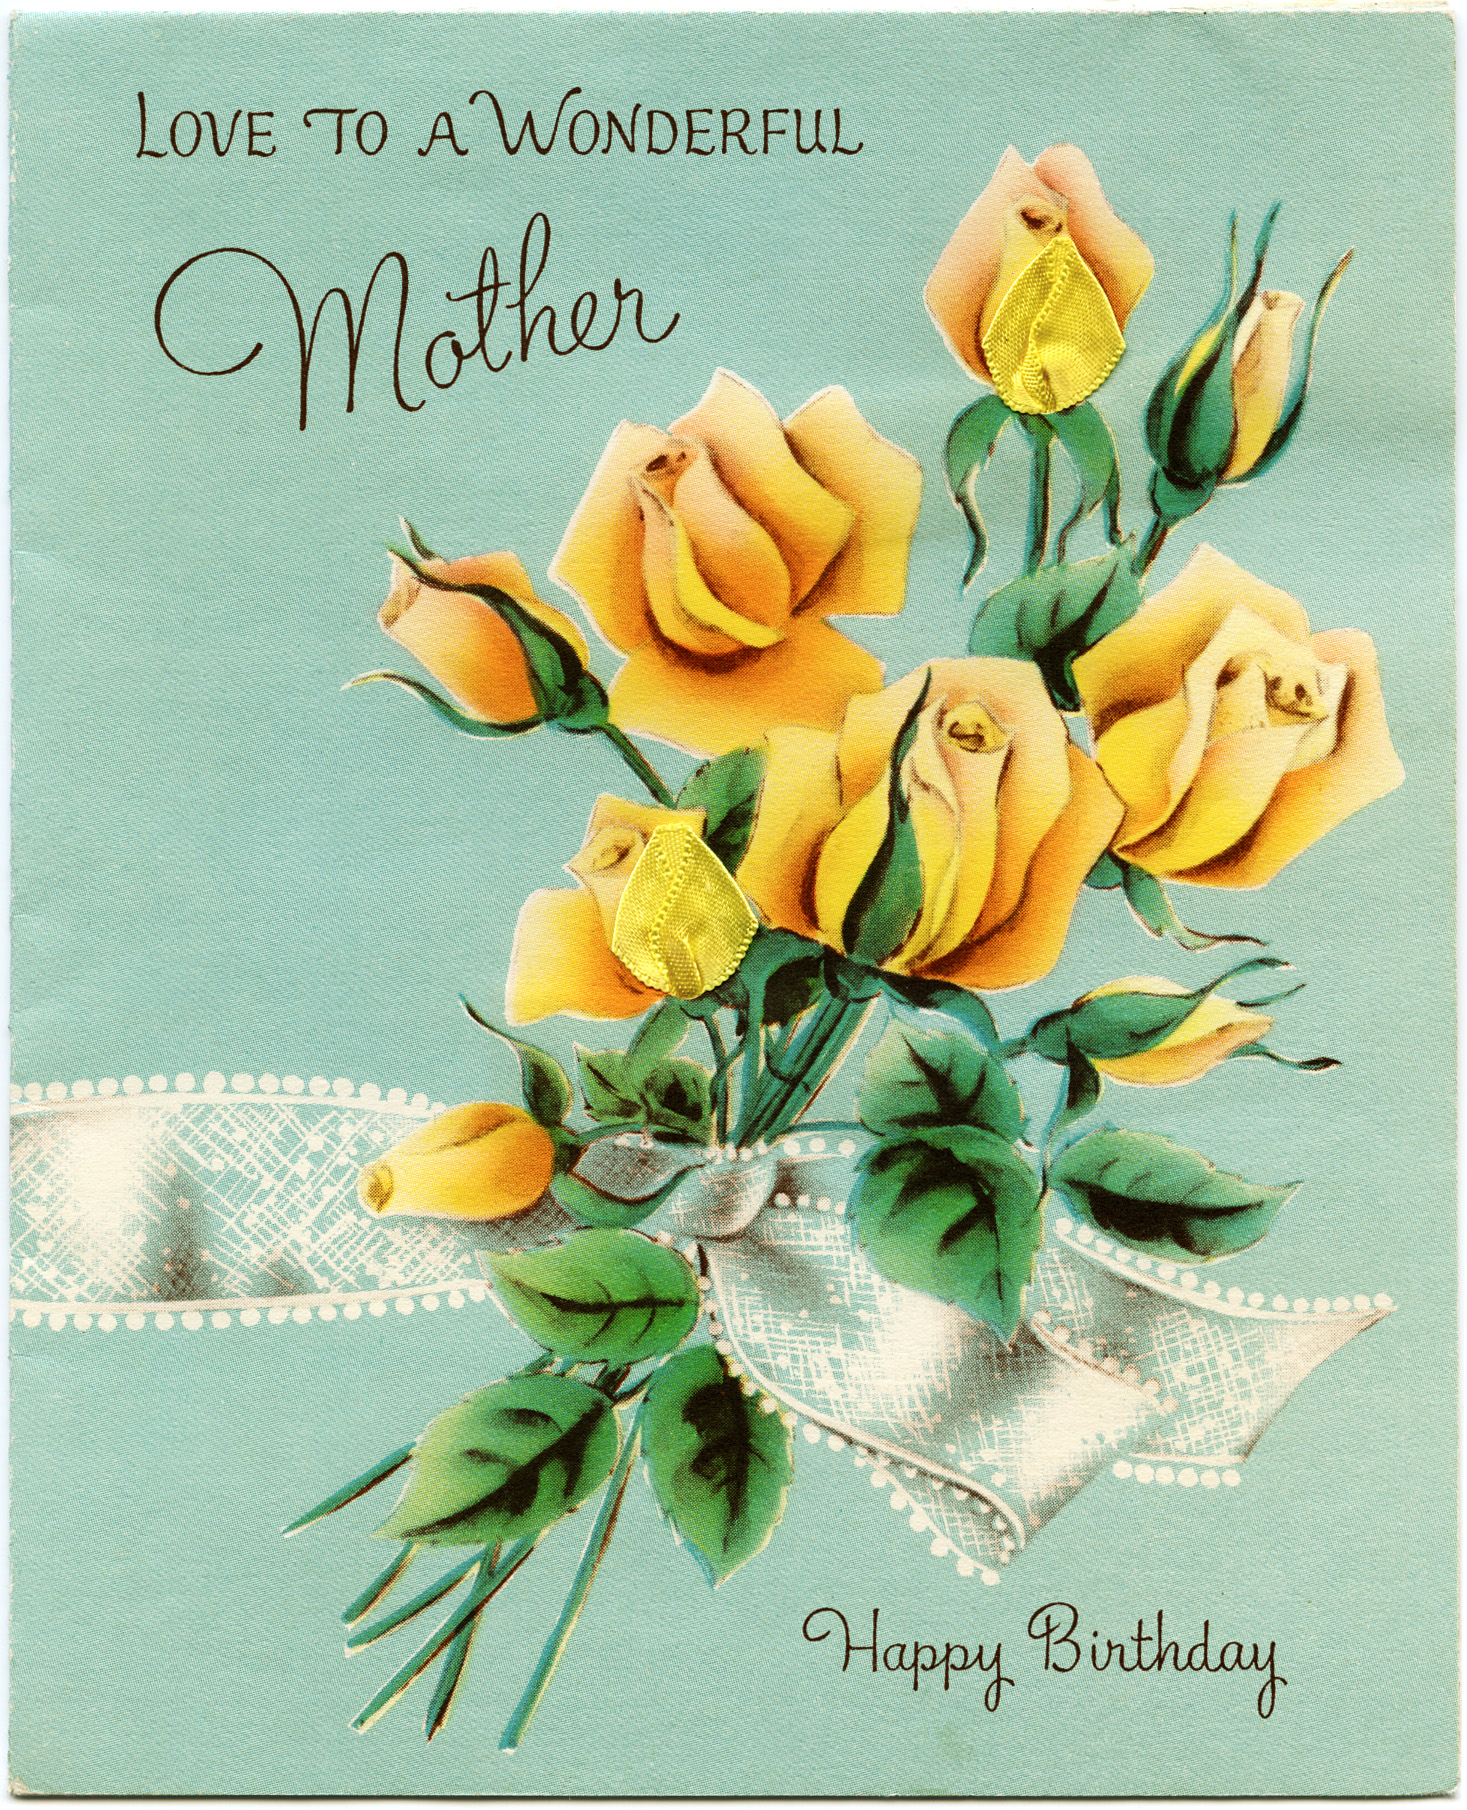 Vintage mothers birthday greeting card old design shop blog today izmirmasajfo